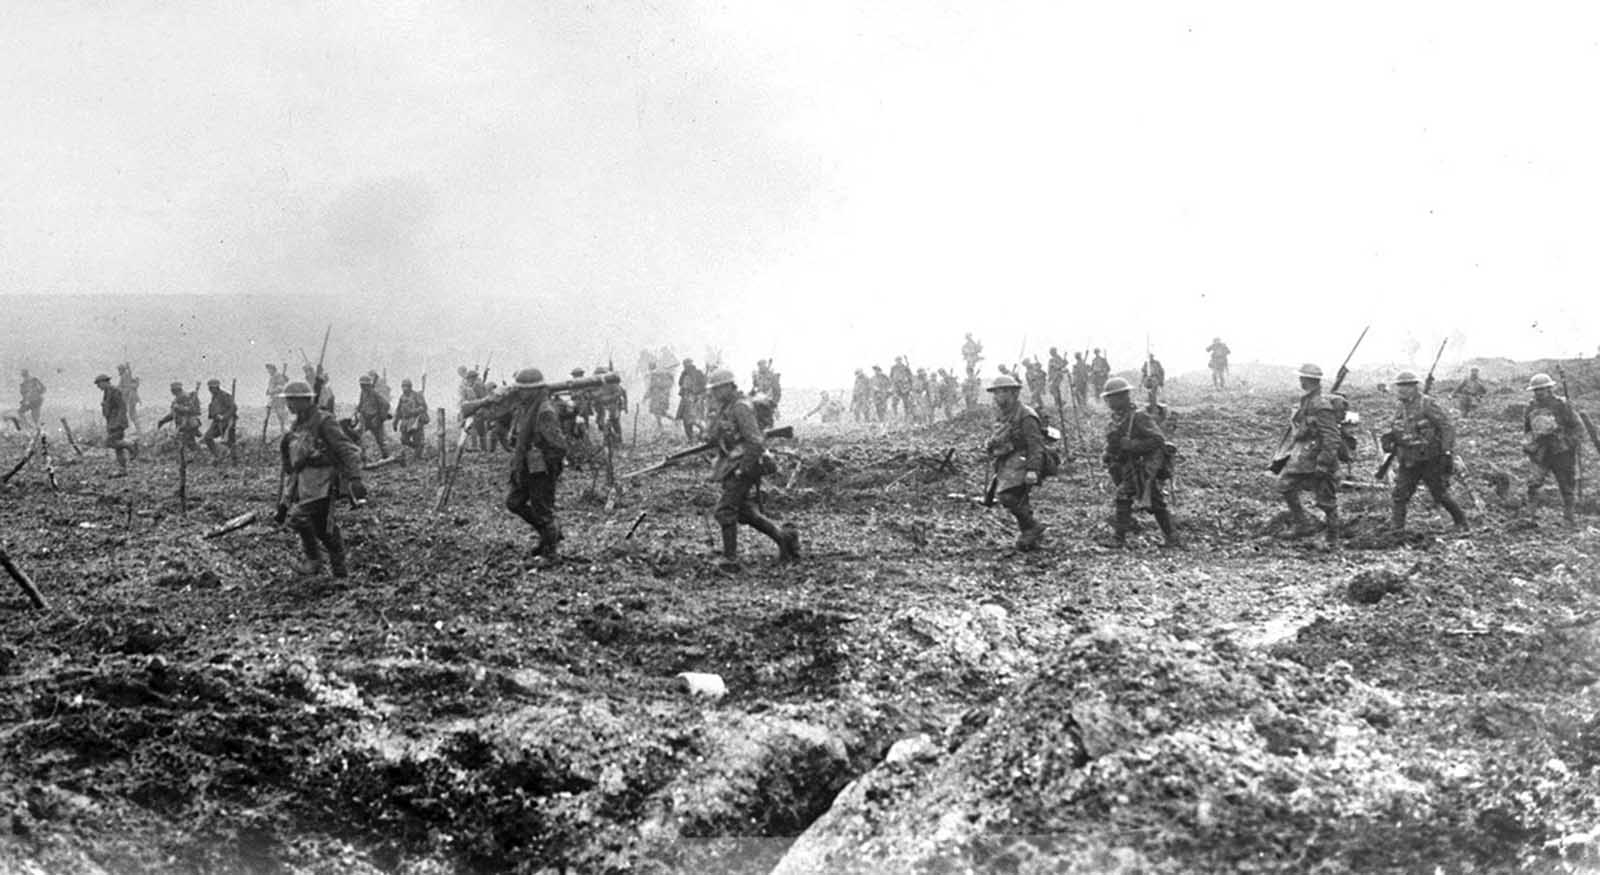 British soldiers on Vimy Ridge, 1917. British and Canadian forces pushed through German defenses at the Battle of Vimy Ridge in April of 1917, advancing as far as six miles in three days, retaking high ground and the town of Thelus, at the cost of nearly 4,000 dead.